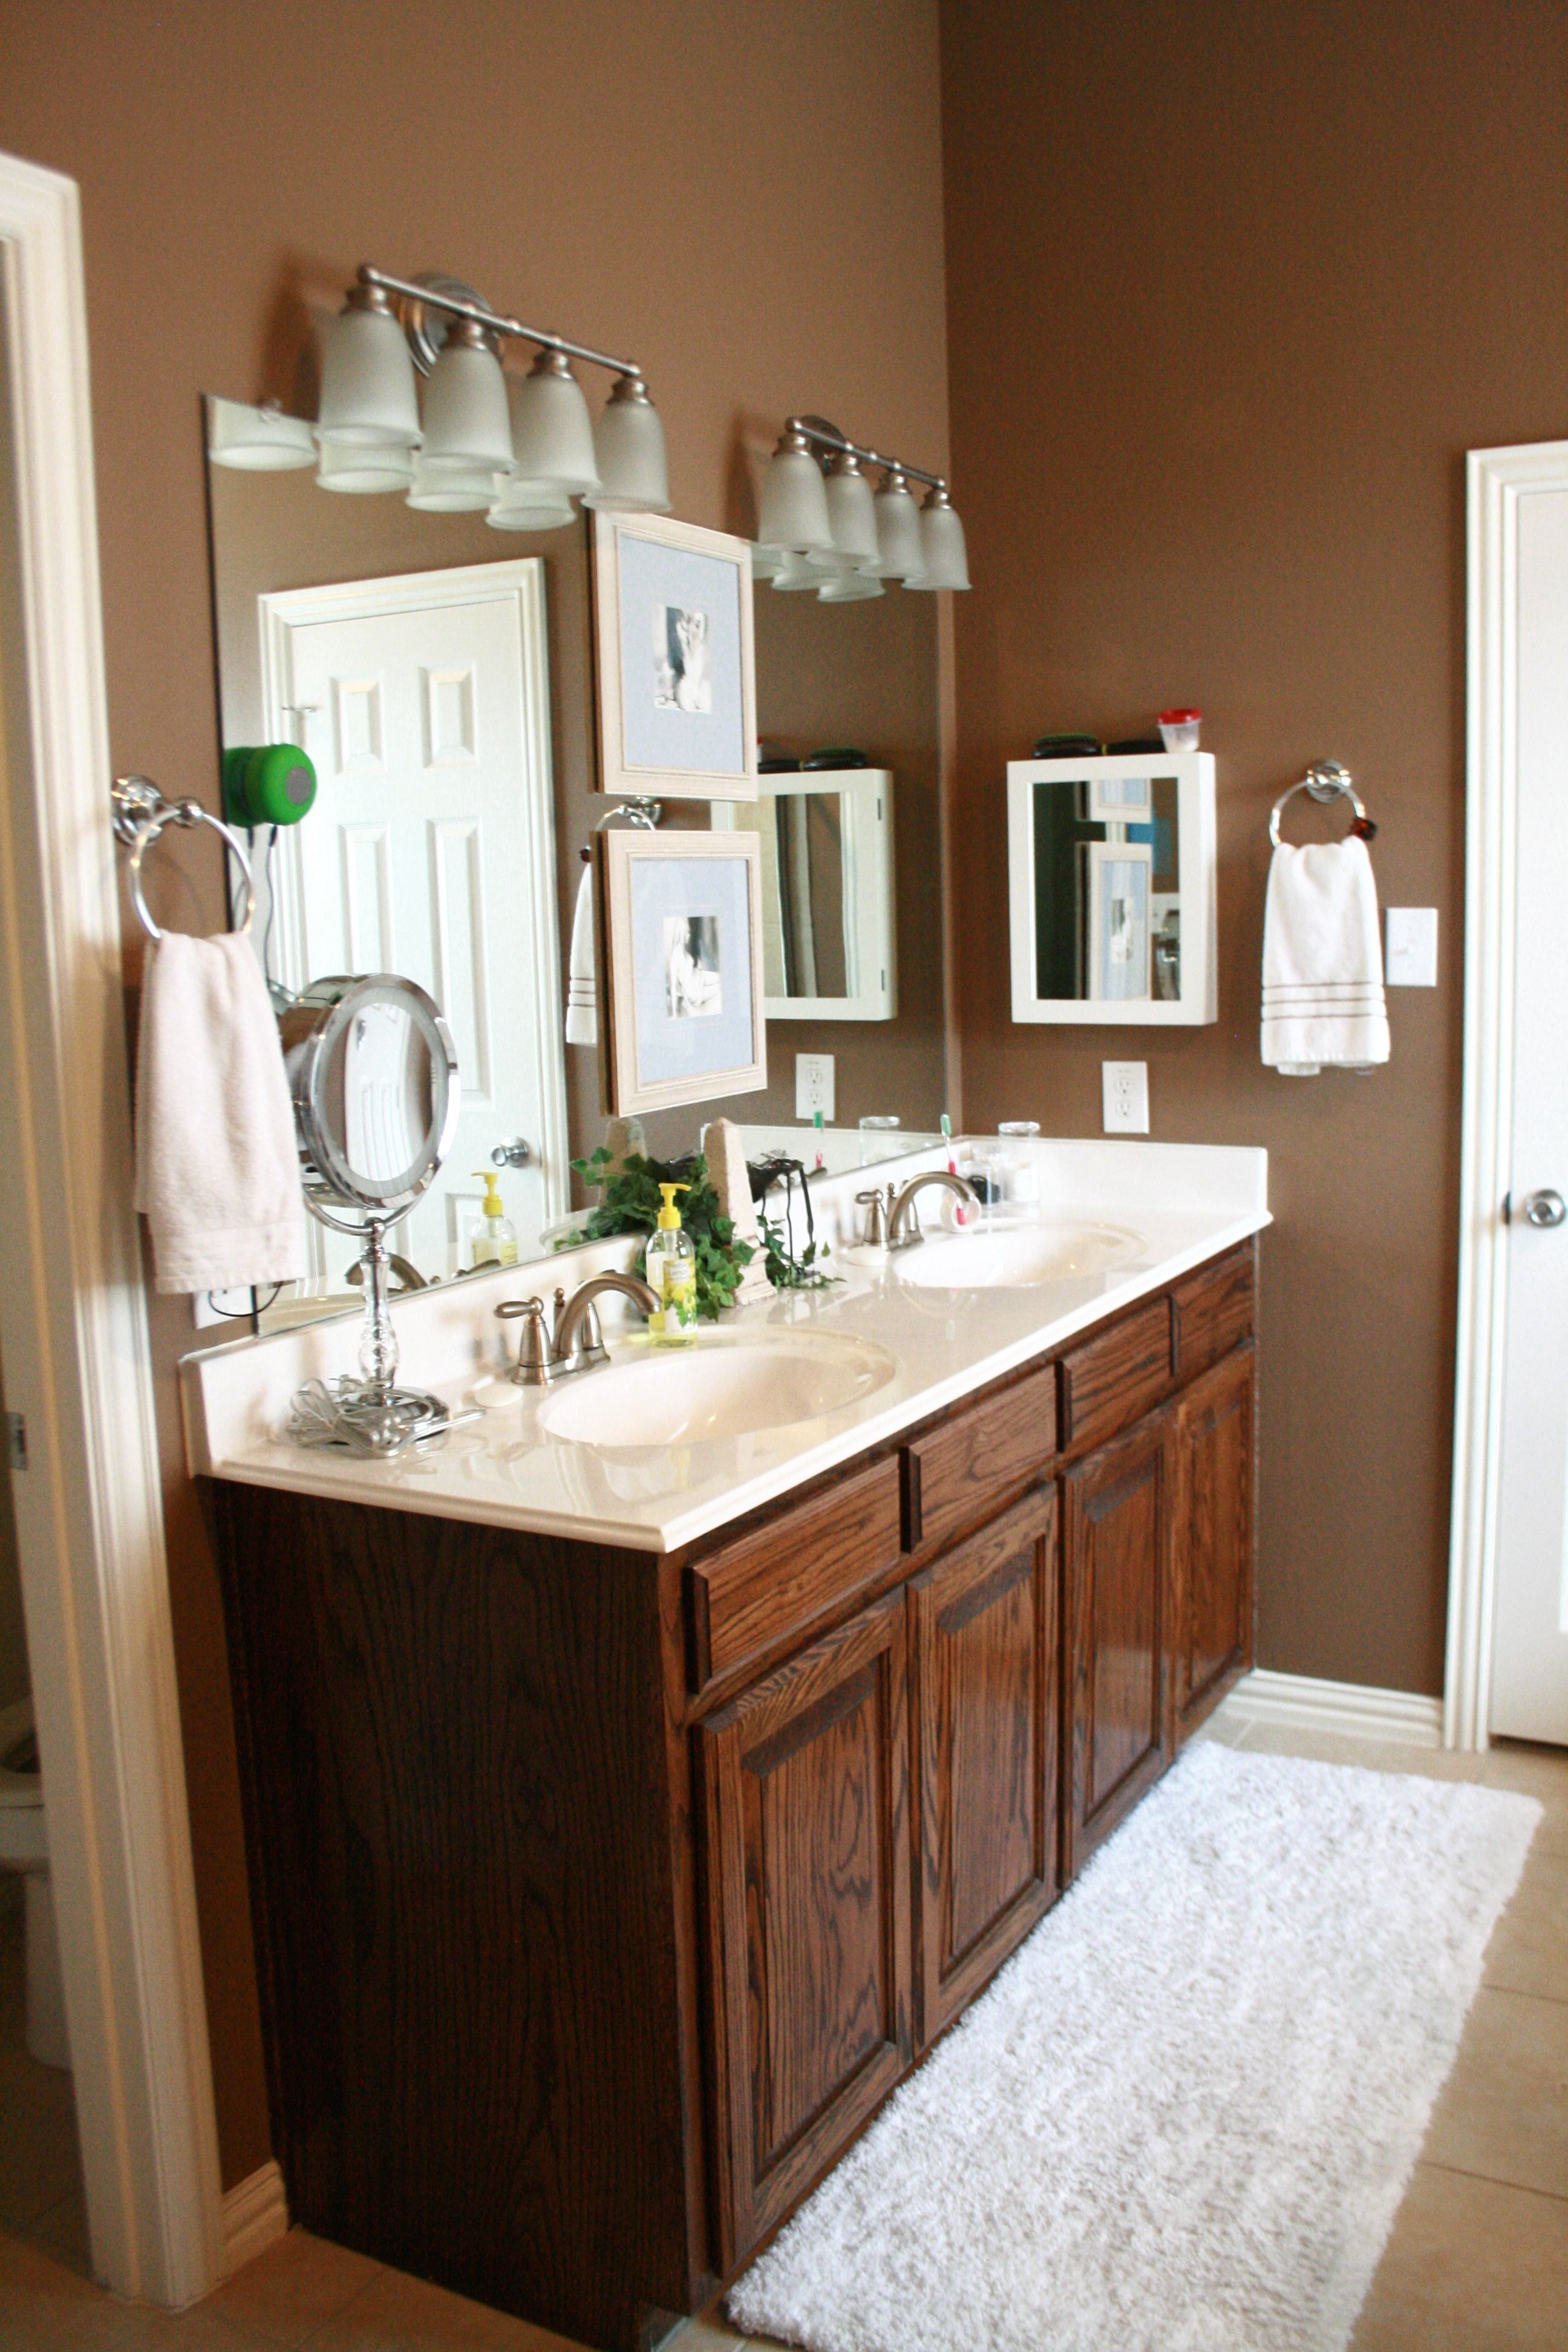 Category Archives: Bathroom Hardware